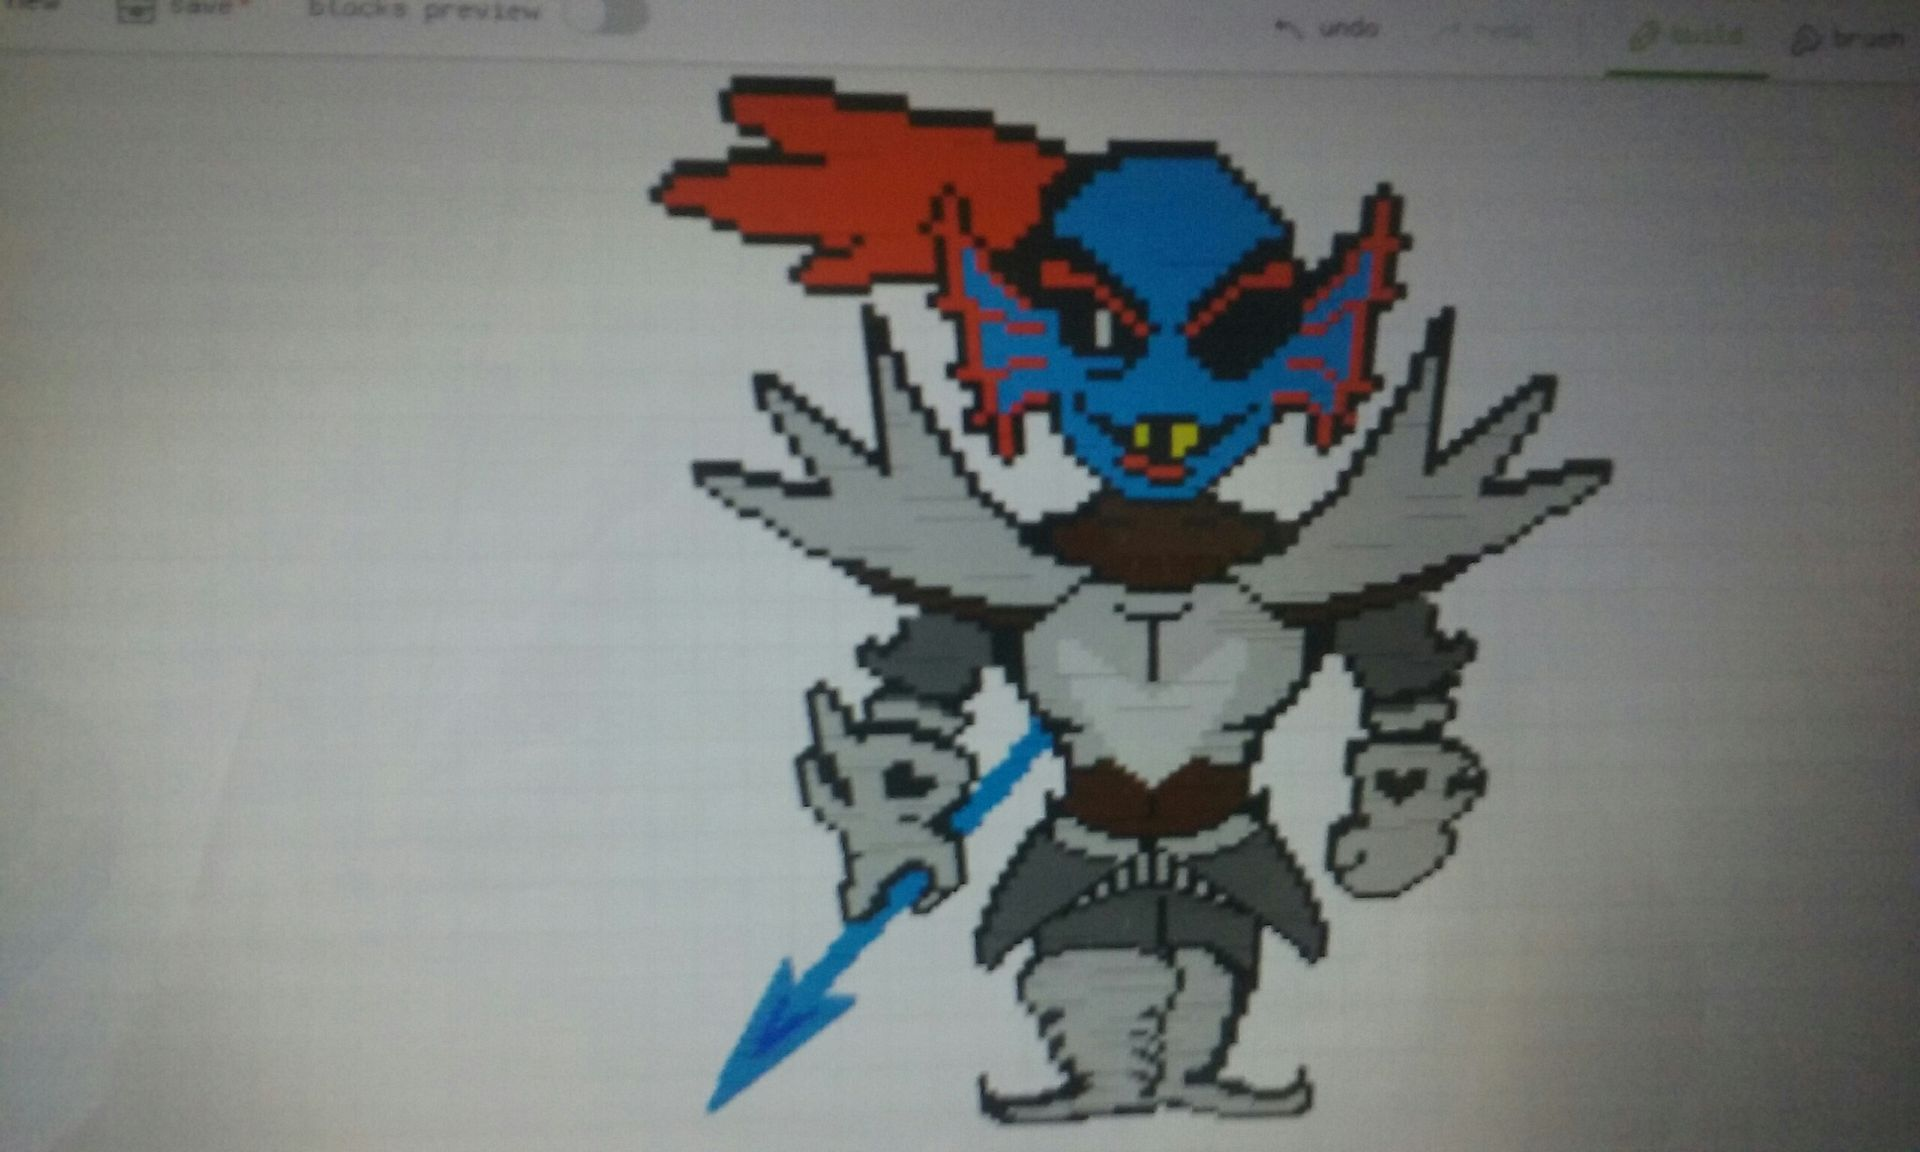 Undertale Pixel and Art Book - Undyne the Undying - Wattpad